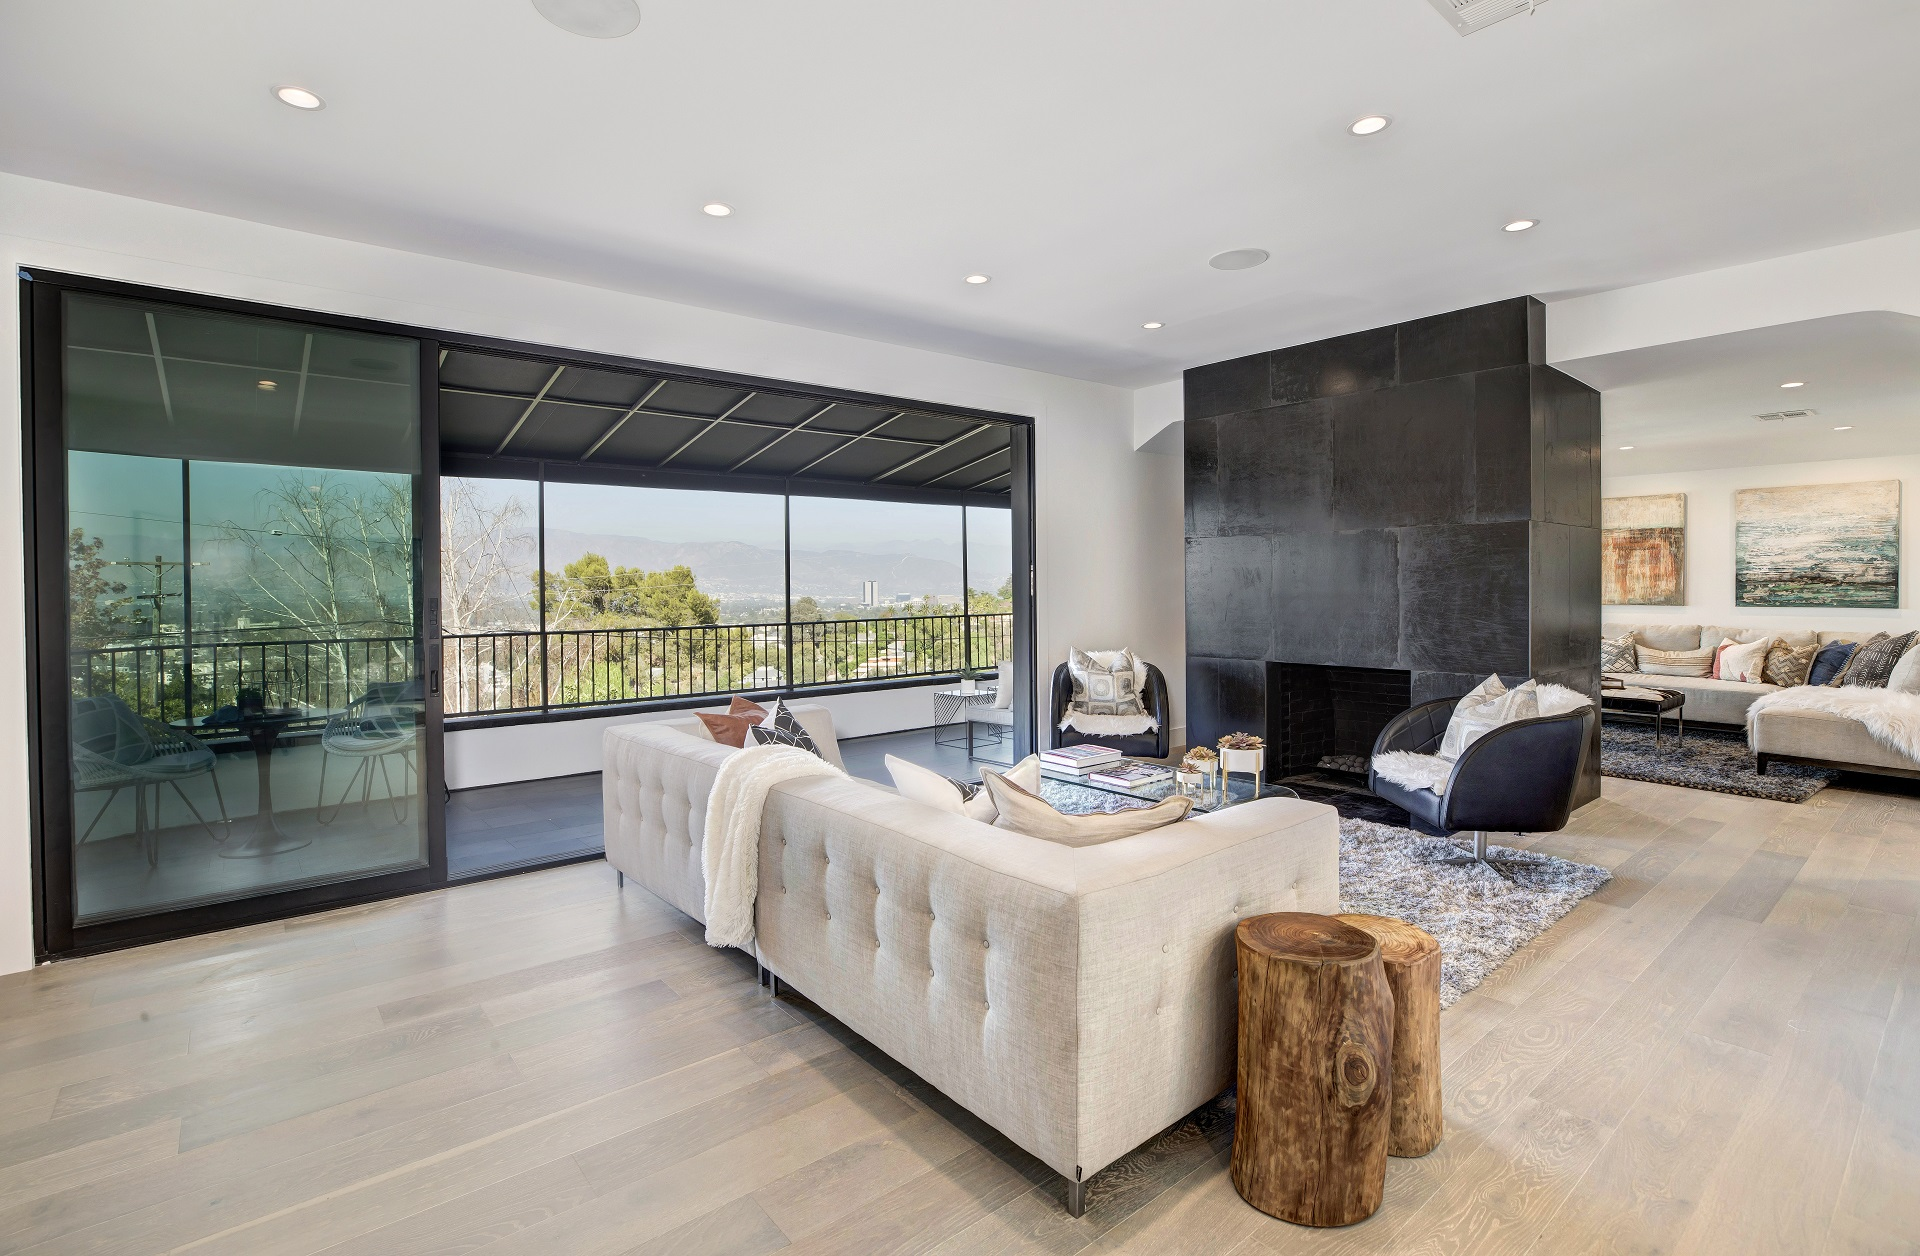 Studio City Hills modern contemporary  - Modiano Design